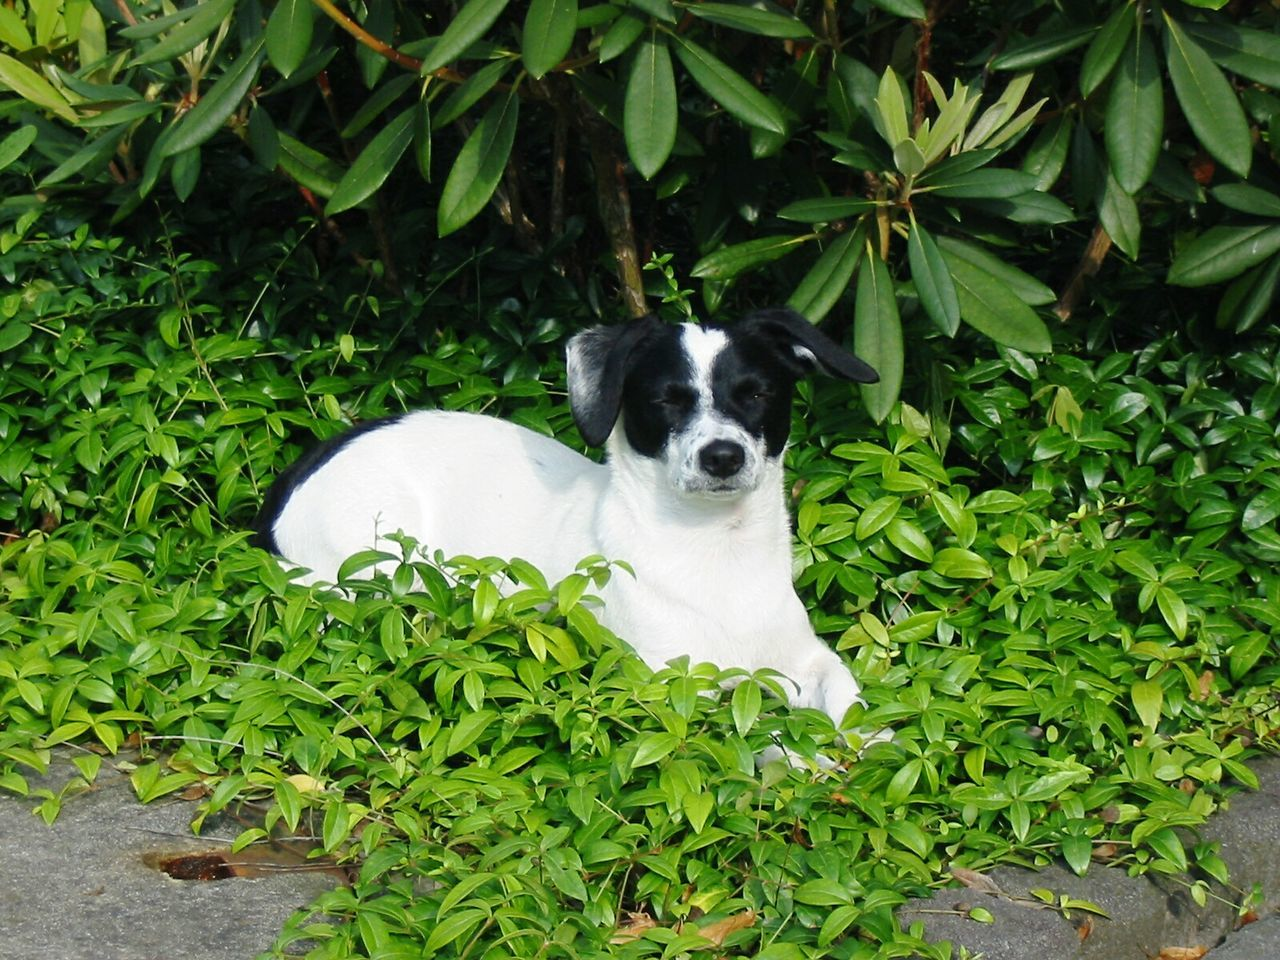 CLOSE-UP OF A DOG ON Leaves